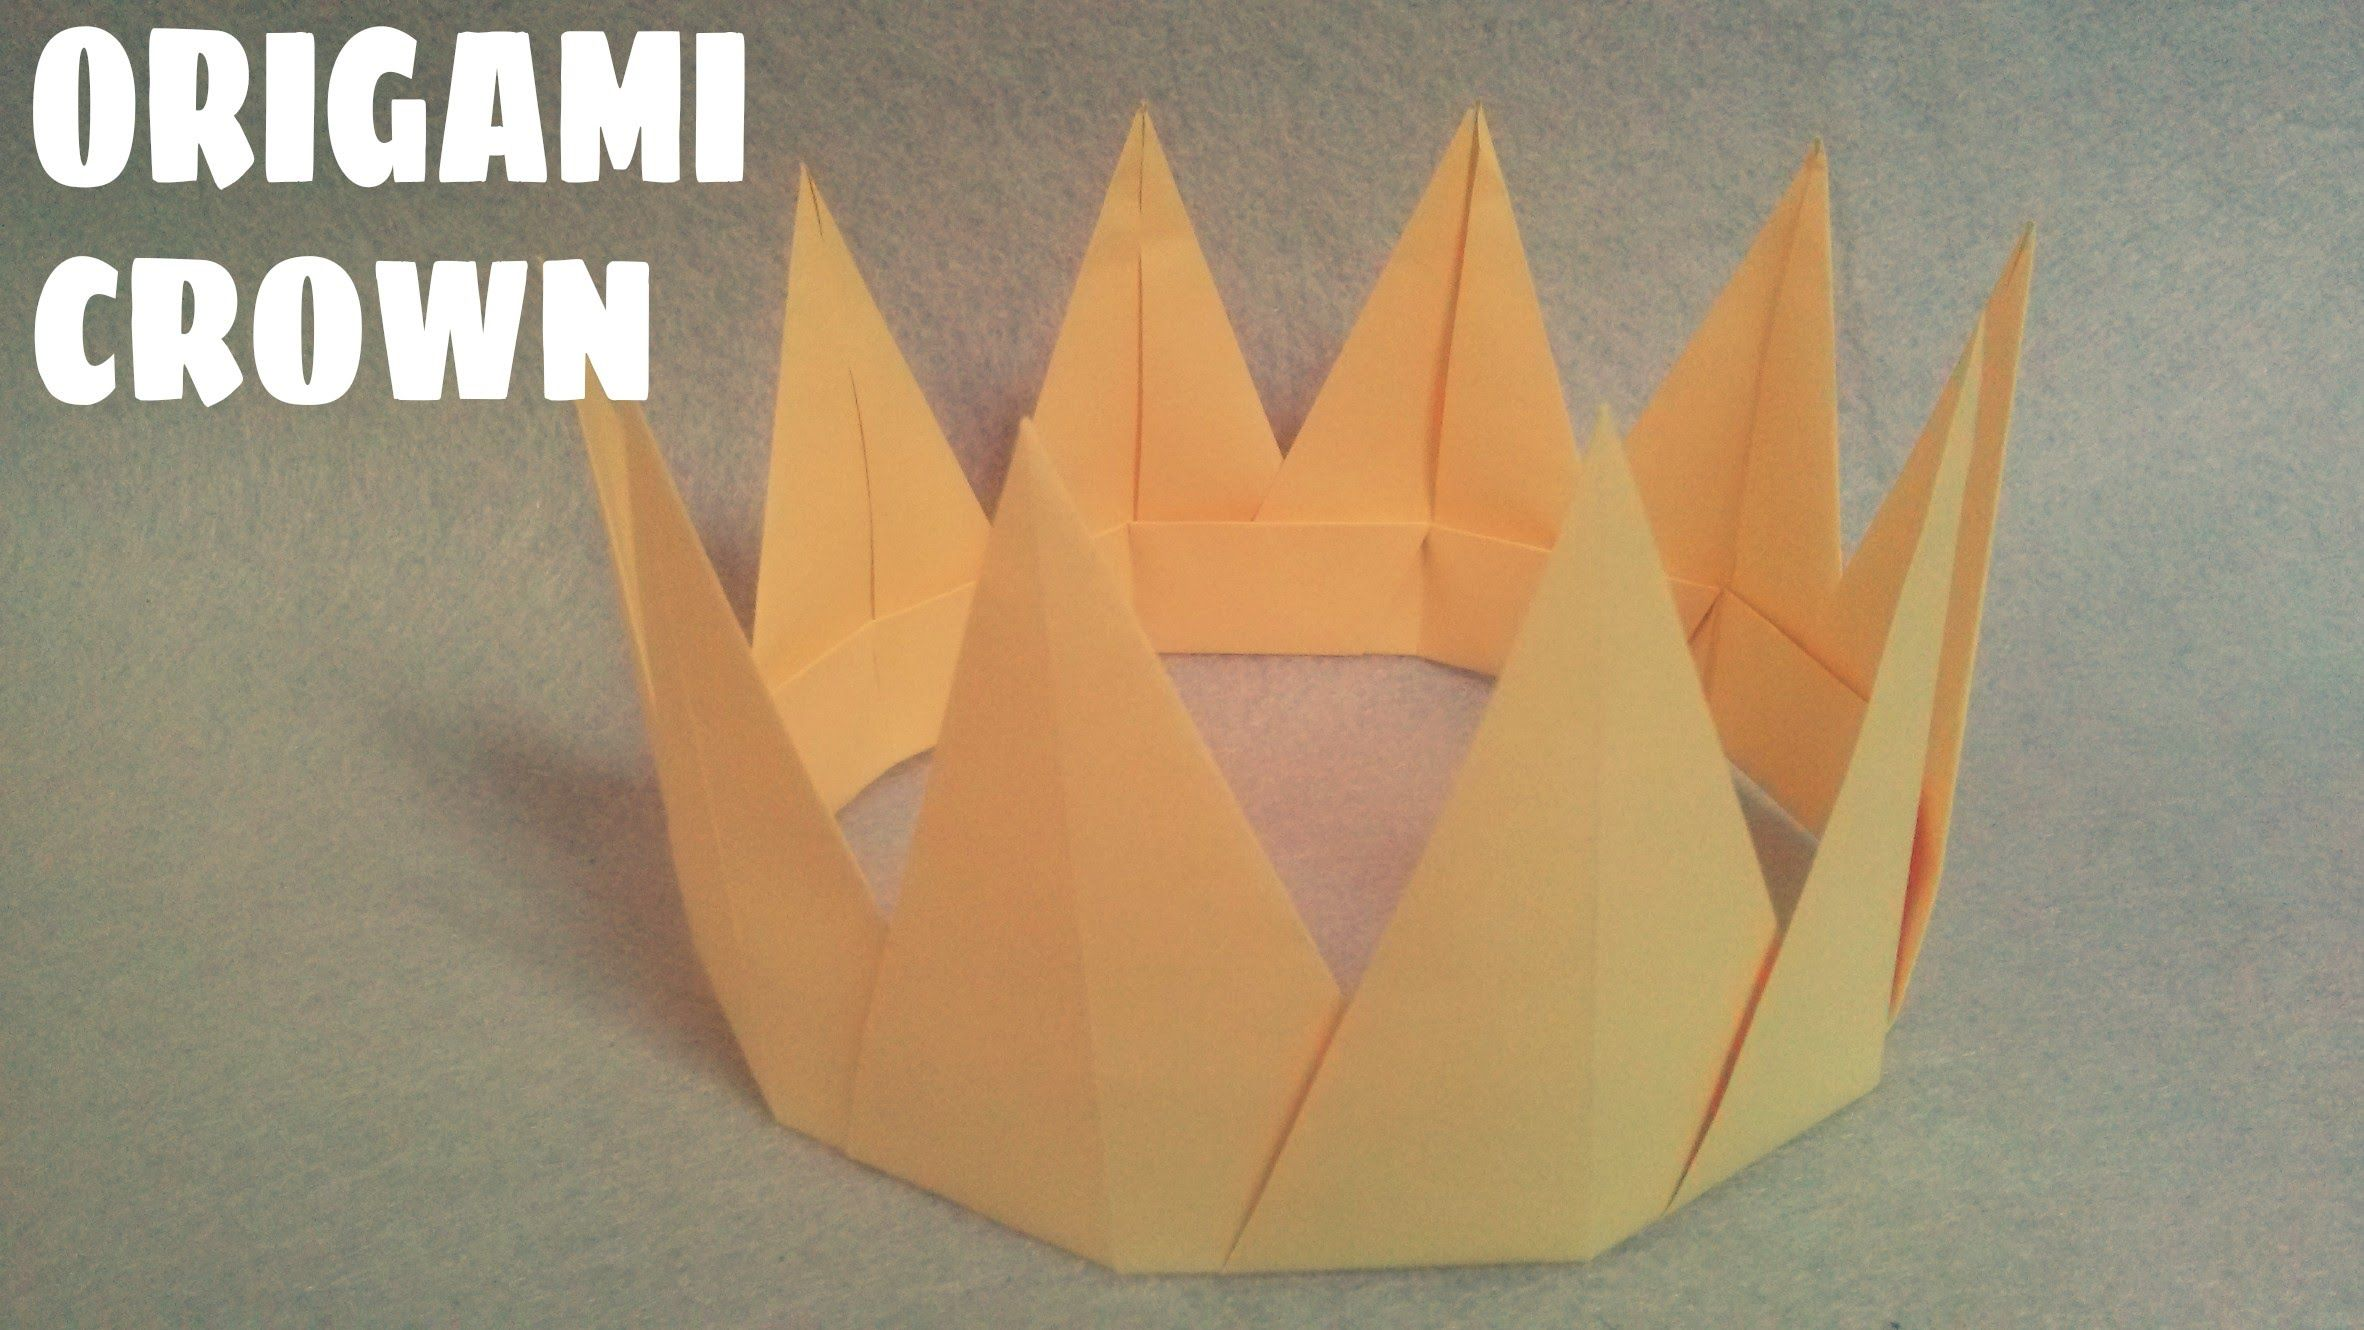 Origami for kids origami crown easy origami origami origami for kids origami crown easy origami jeuxipadfo Gallery